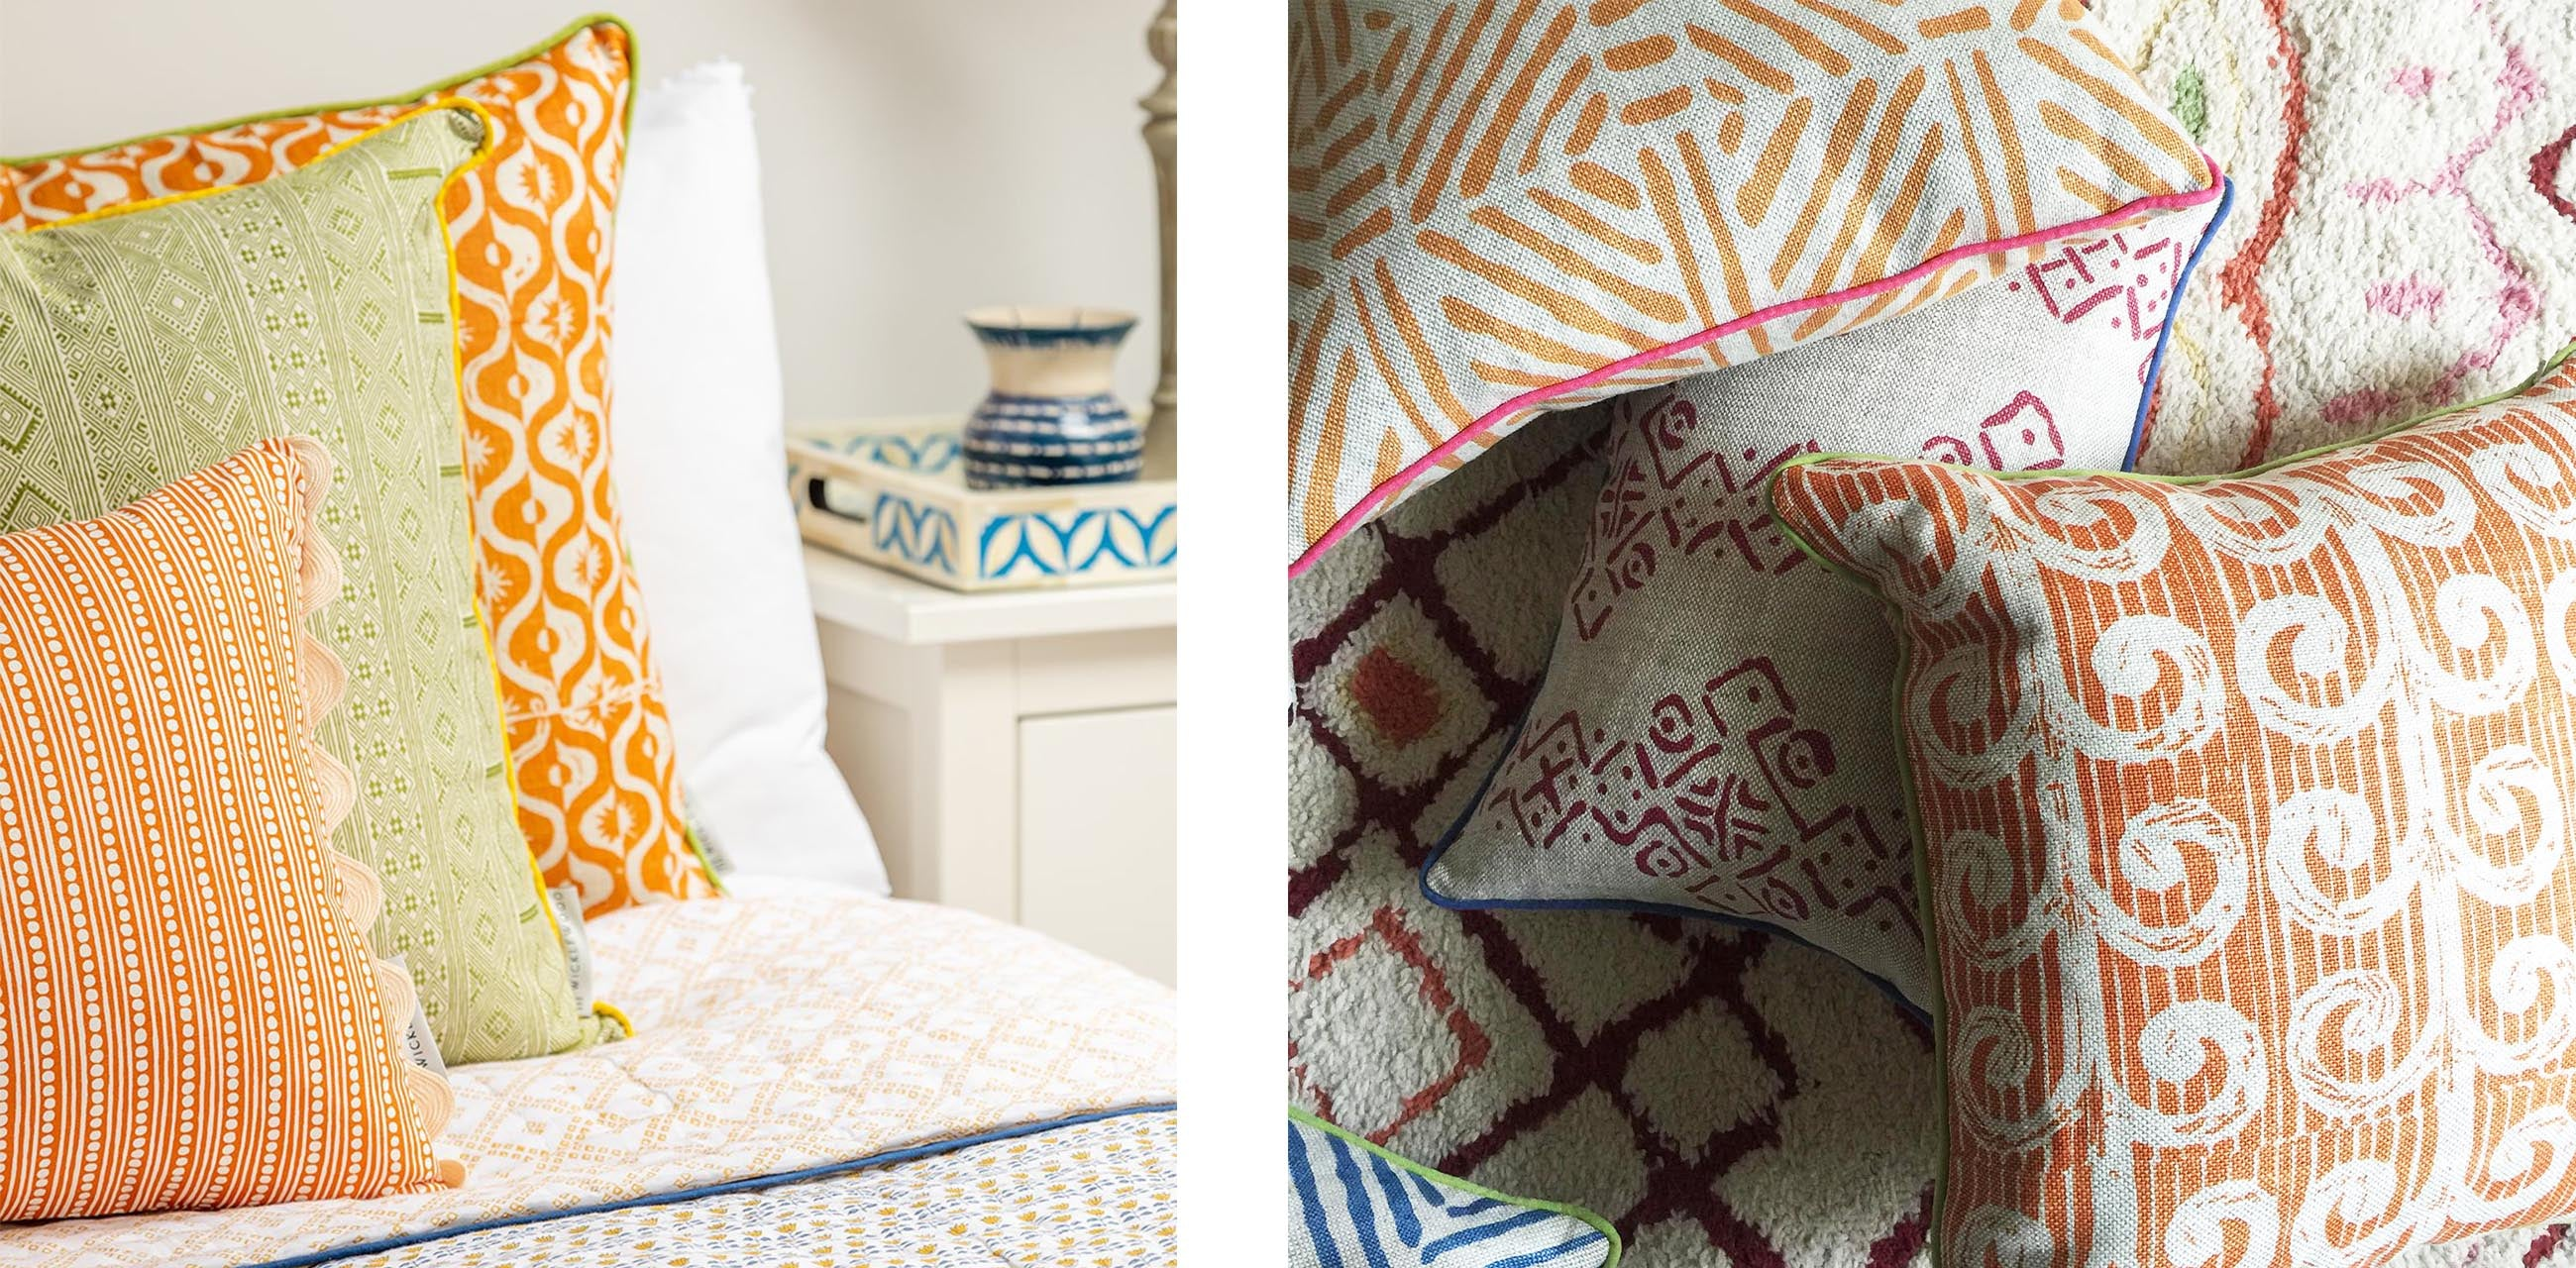 wicklewood autumn cushions with bold patterns and warm tones